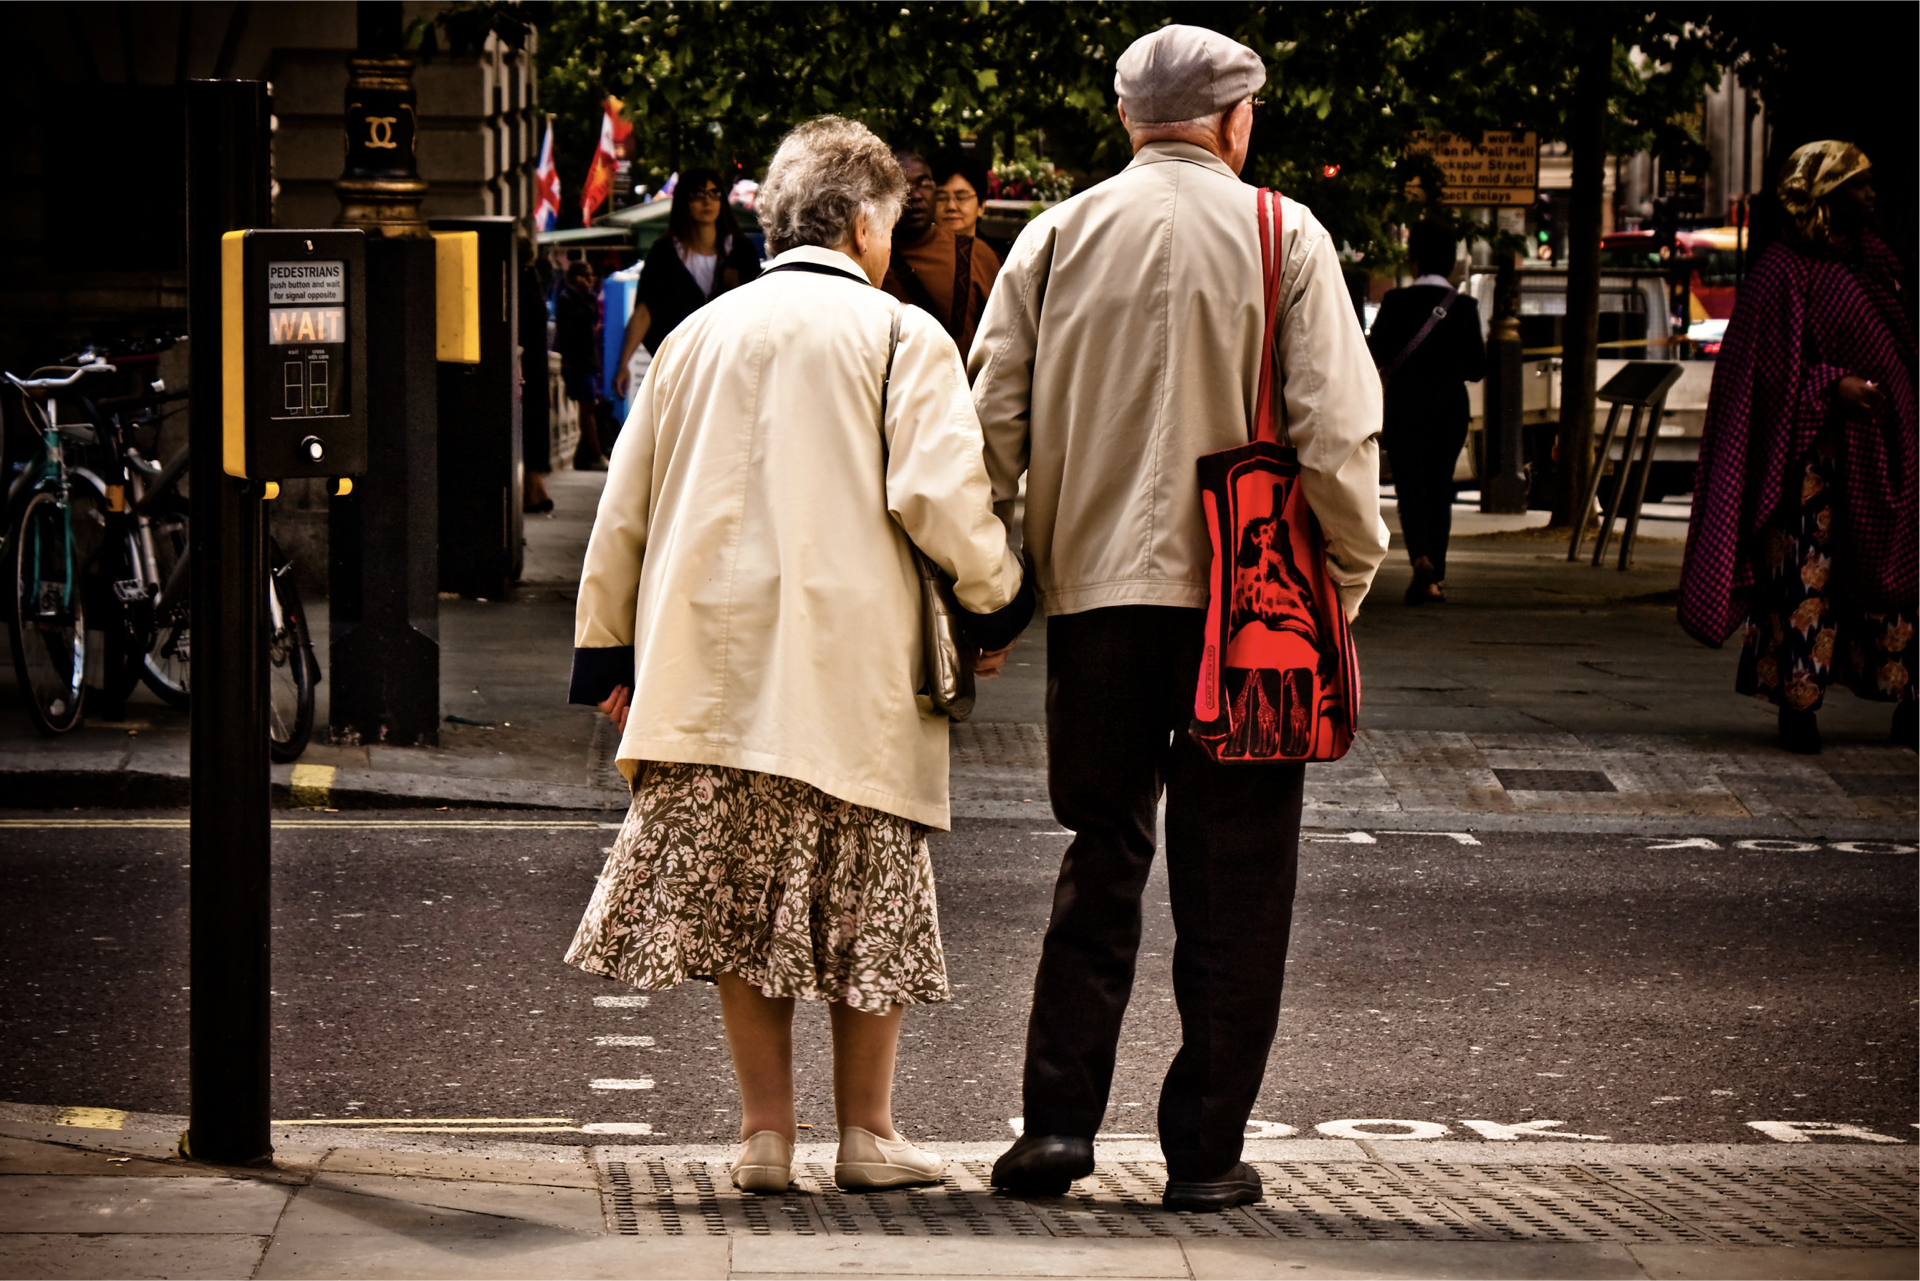 MOBILITY FOR OLDER ADULTS